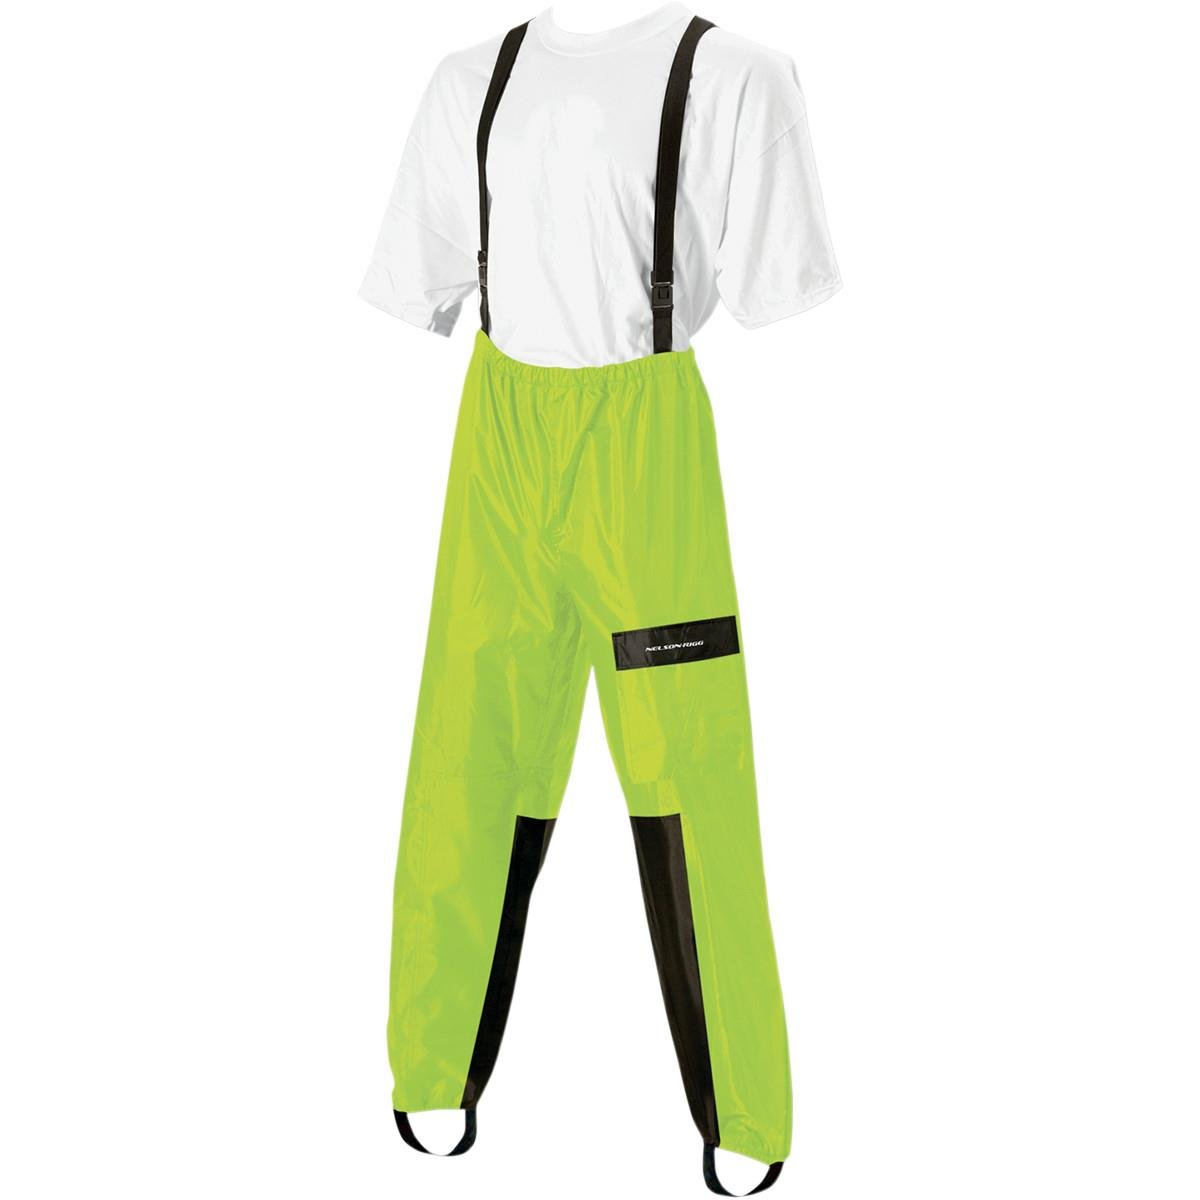 Nelson-Rigg Aston AS-250 Unisex Rain Pants (Yellow, XX-Large) (High Visibility) Nelson Rigg AS250HVYL05-XX